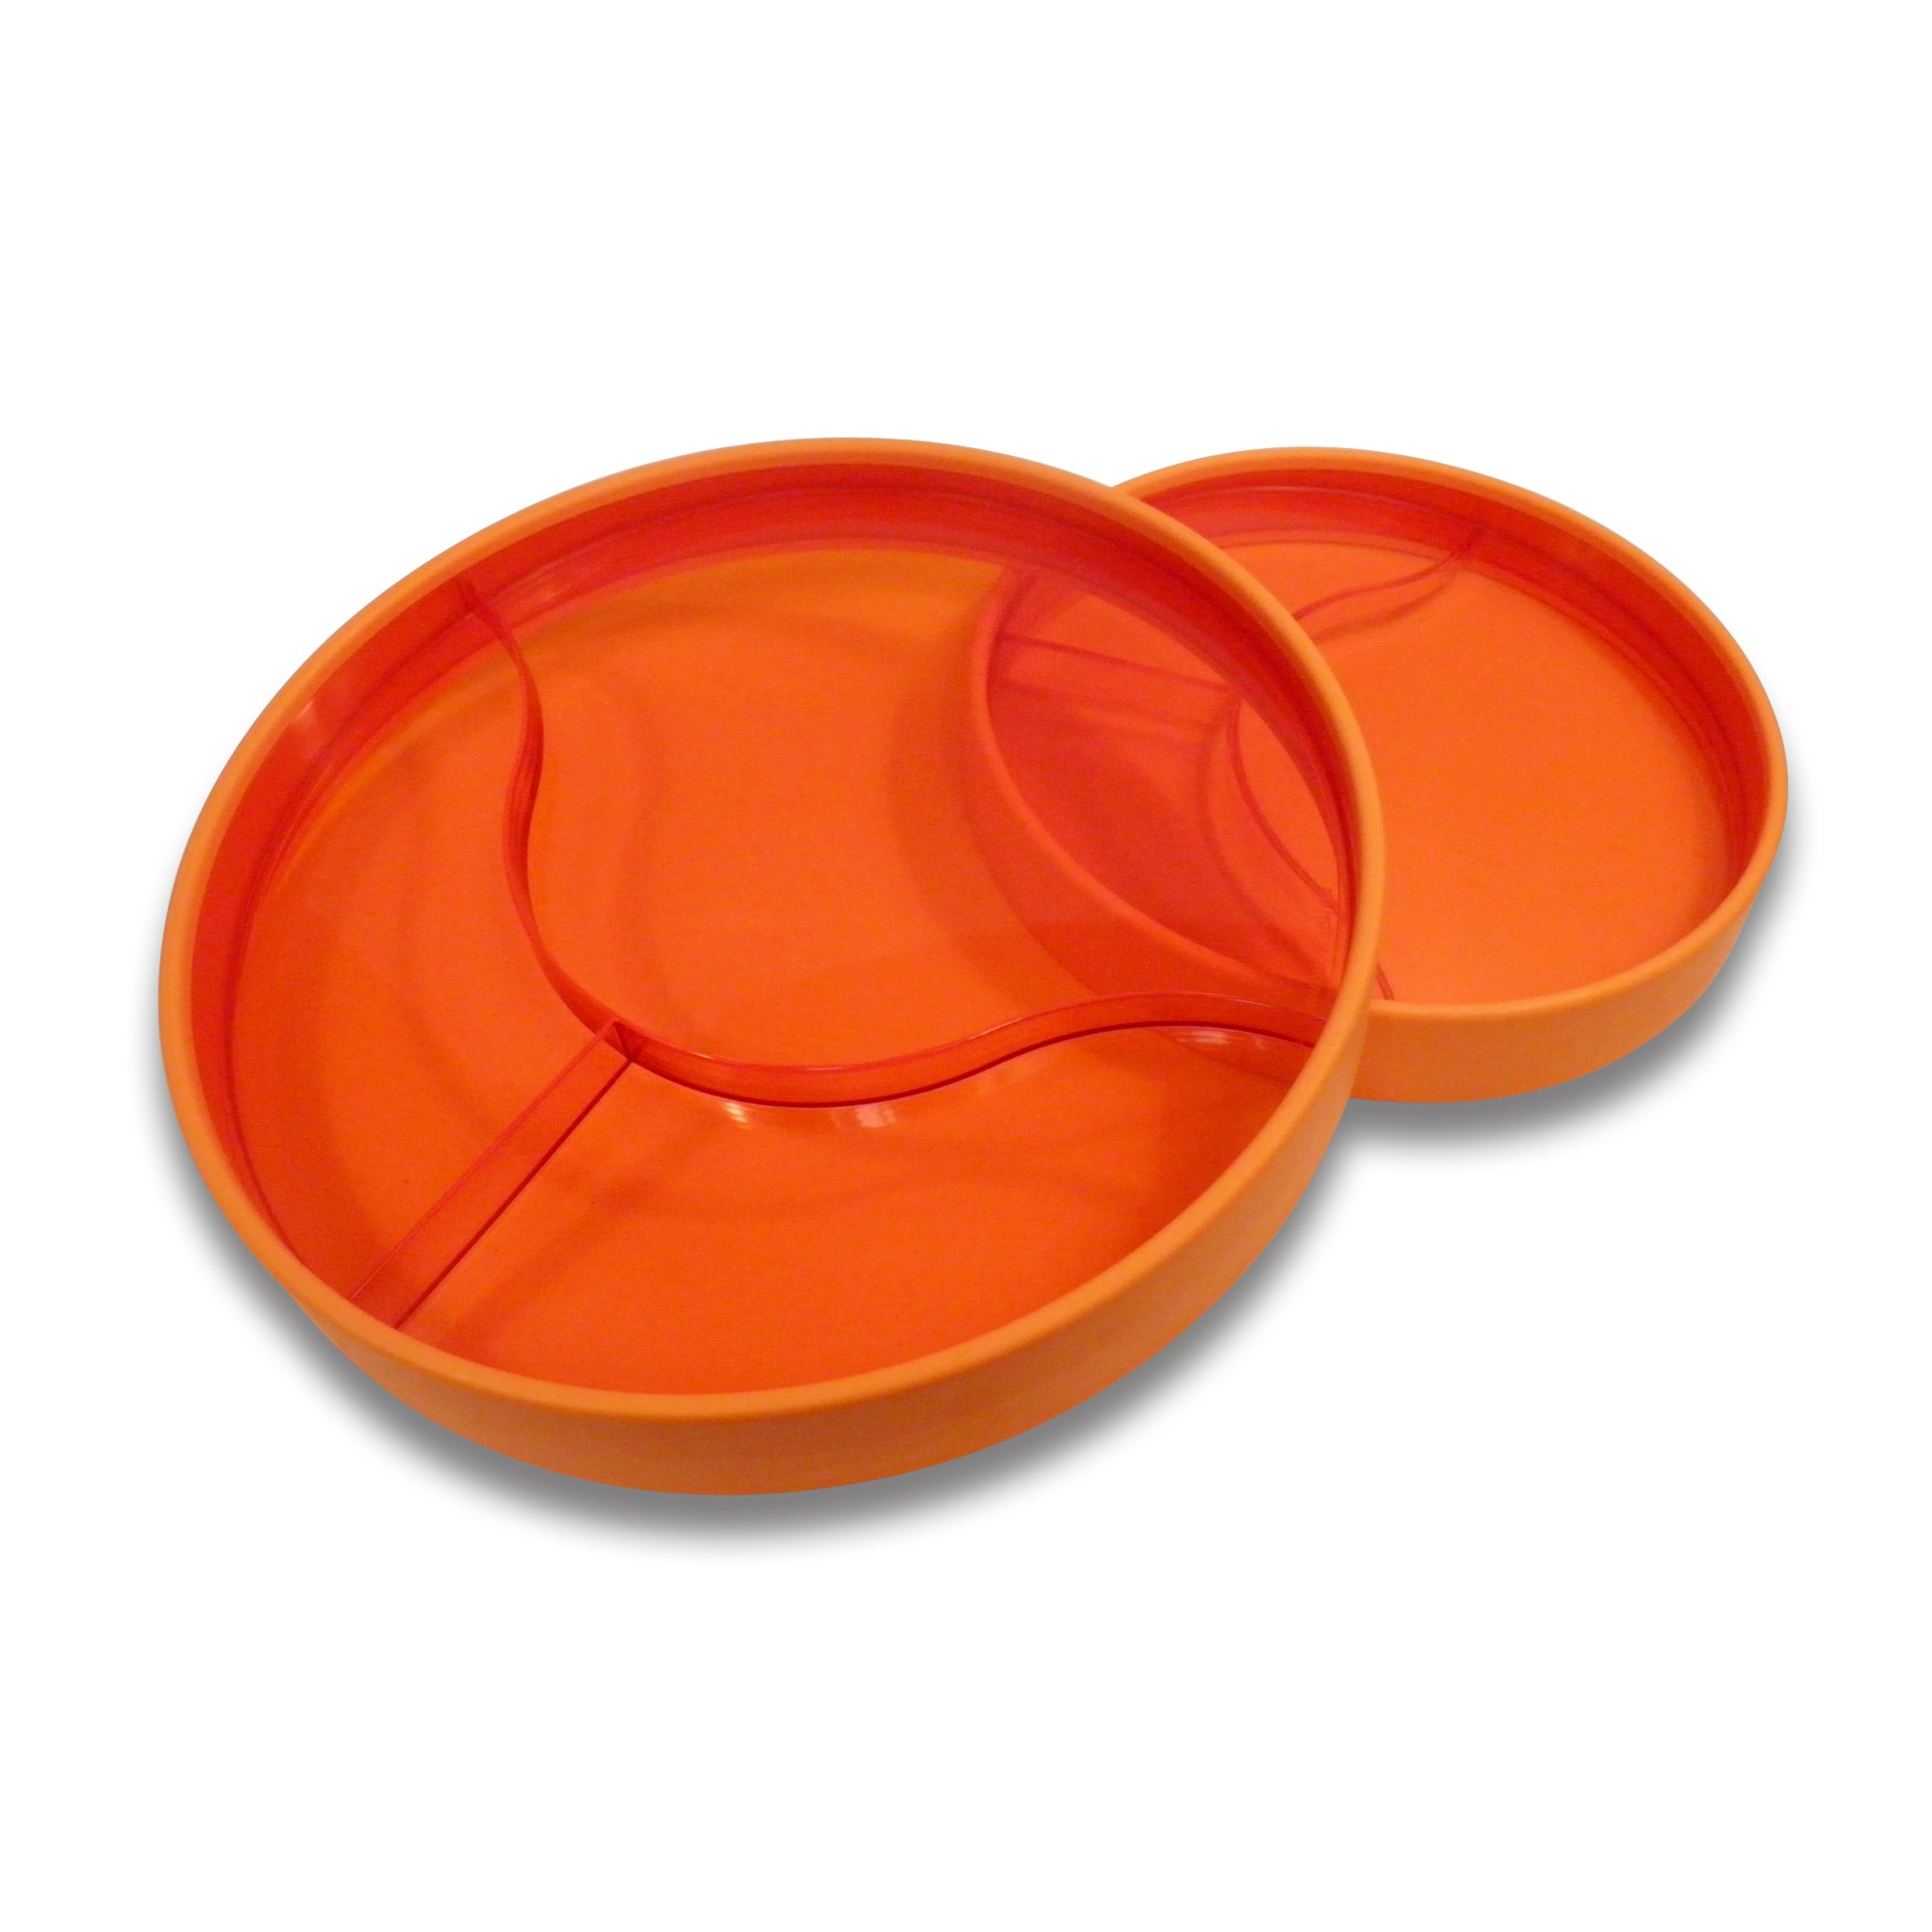 "STAYnEAT Reversible Suction Plate Set, 2 Sided, Sloped, Divided, 7.5"" and 9.5"" Transparent Orange"